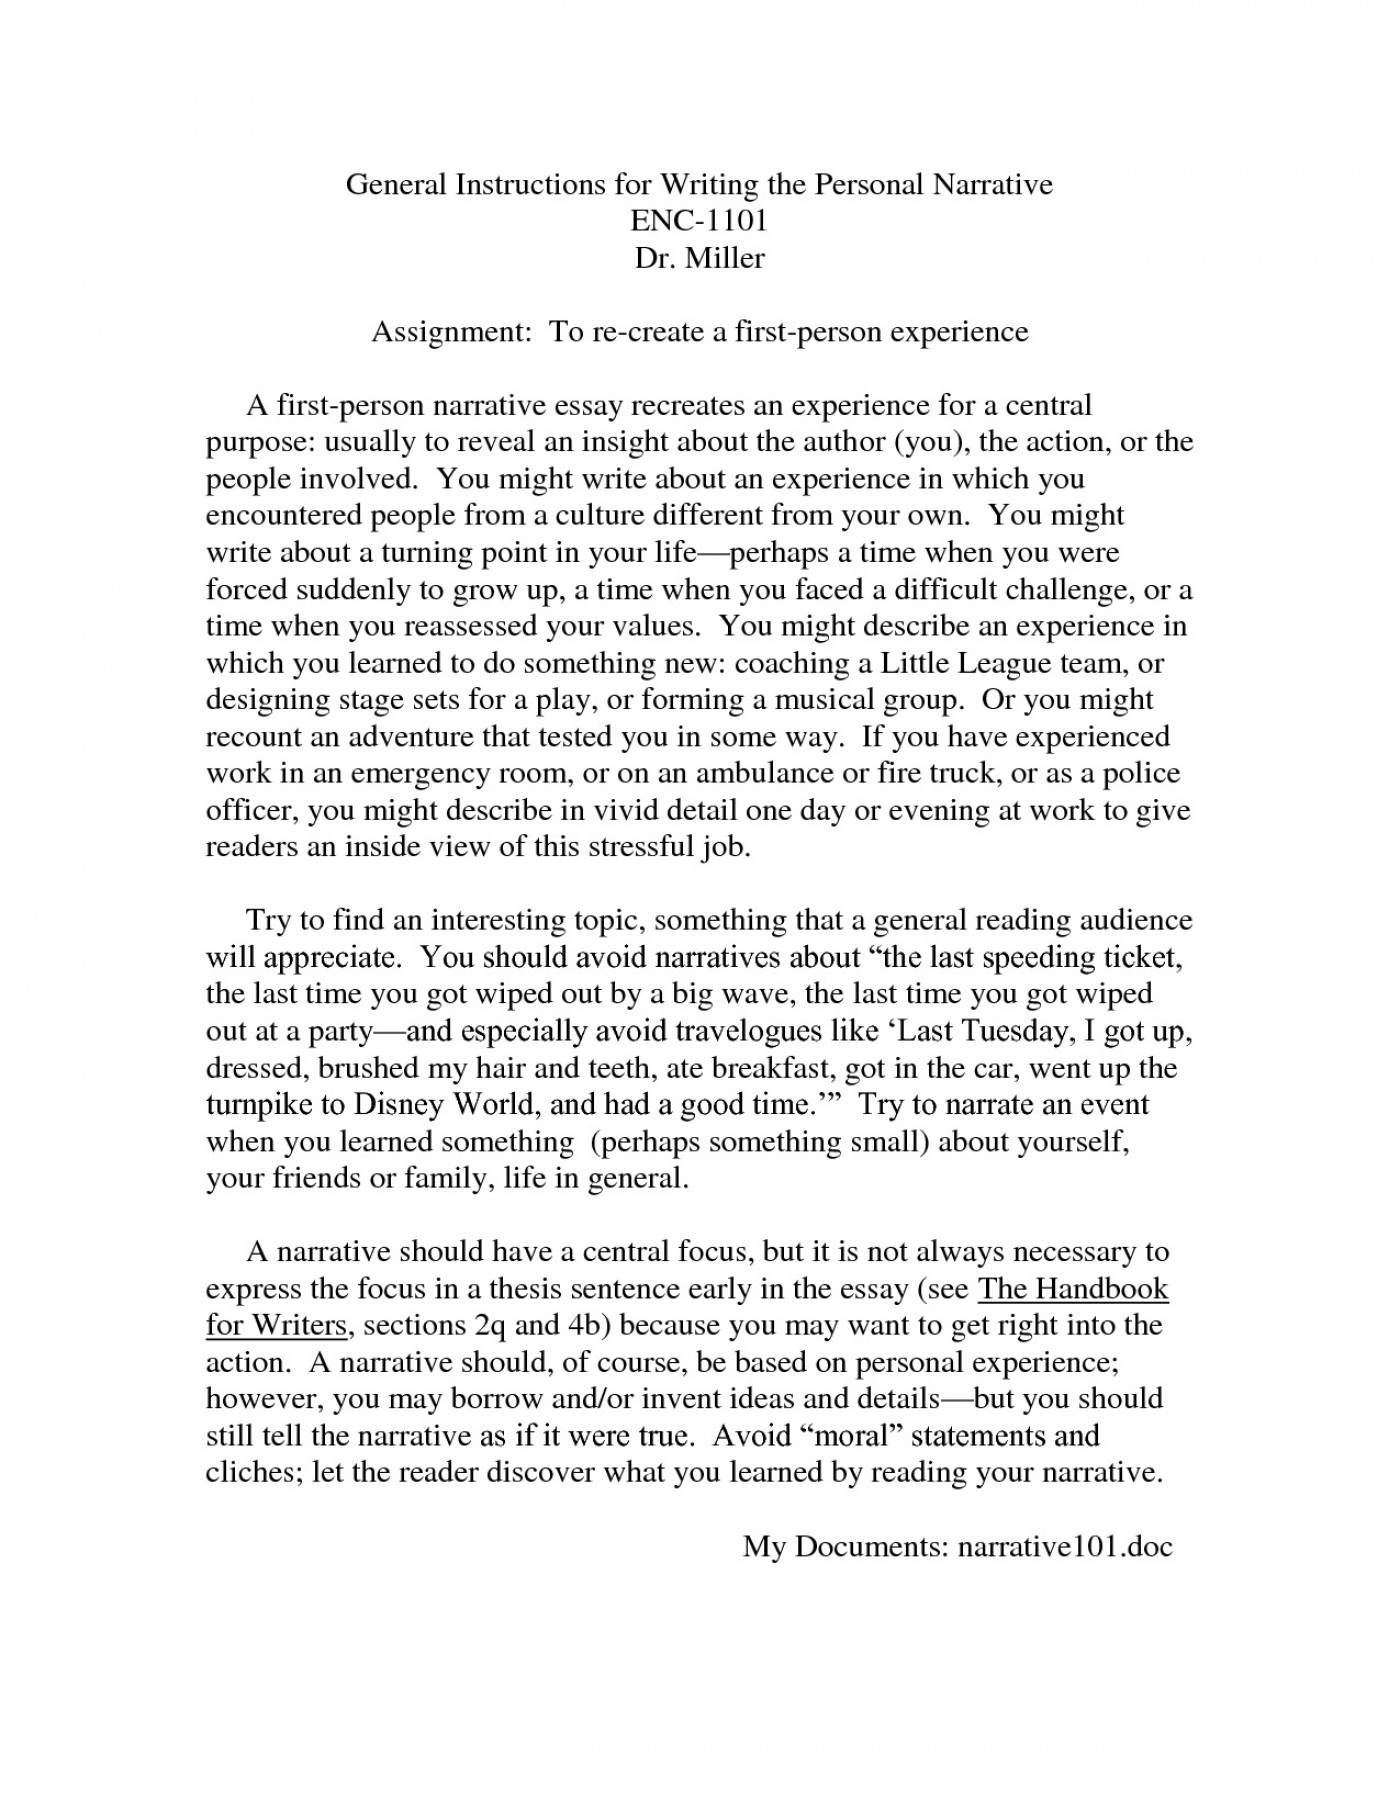 020 Personal Narrative Essayes Writings And Essays Writing Definition Help Me Write My How To Step By Video Pdfe Outline About Yourself Introduction Top Examples Free Samples Of Essay For Colleges 1400